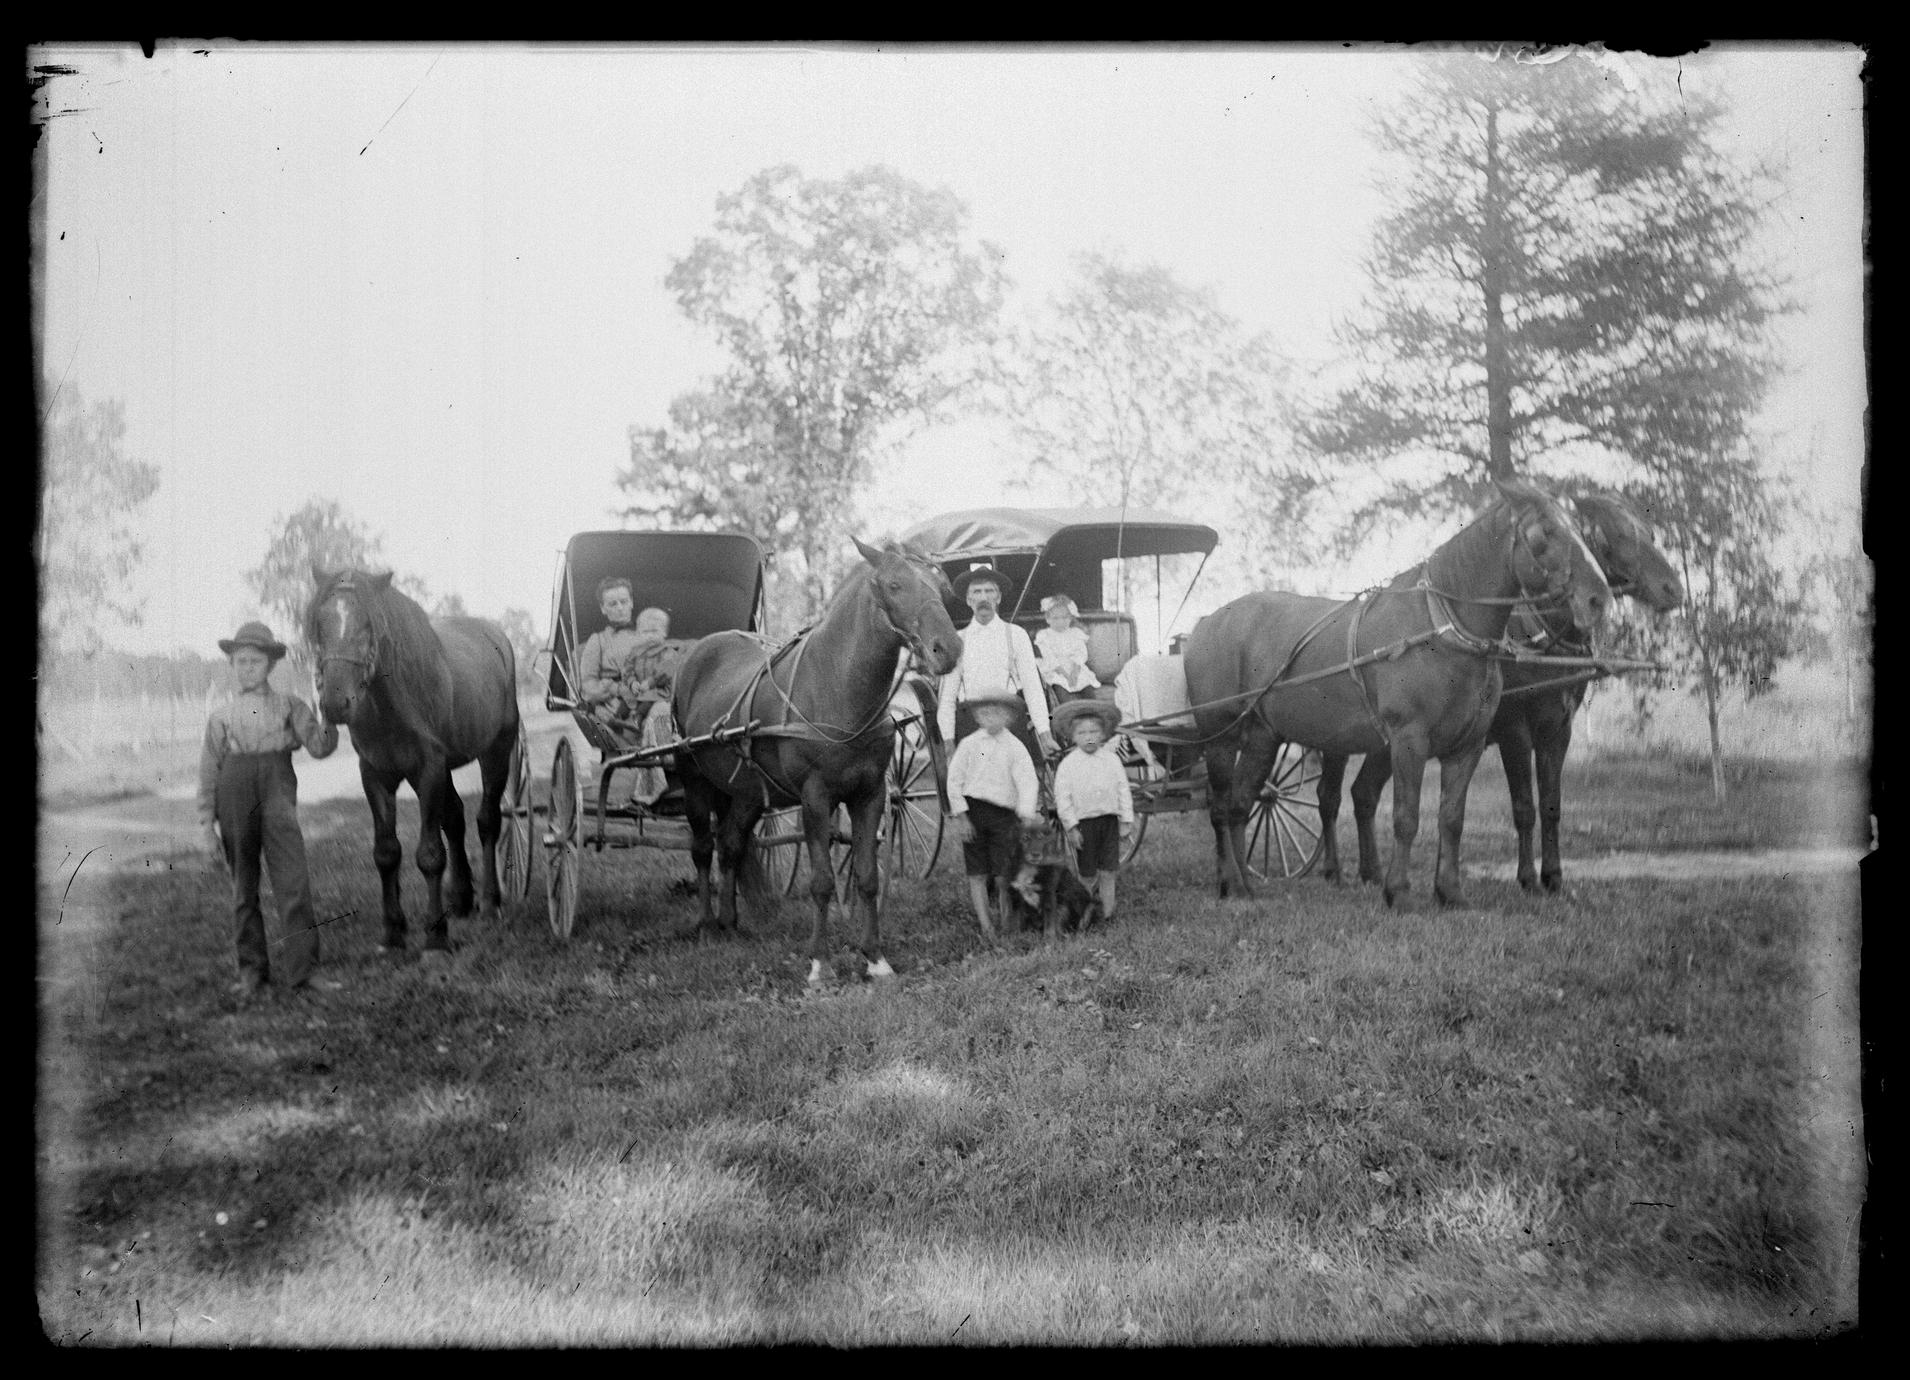 Horse drawn buggies and families